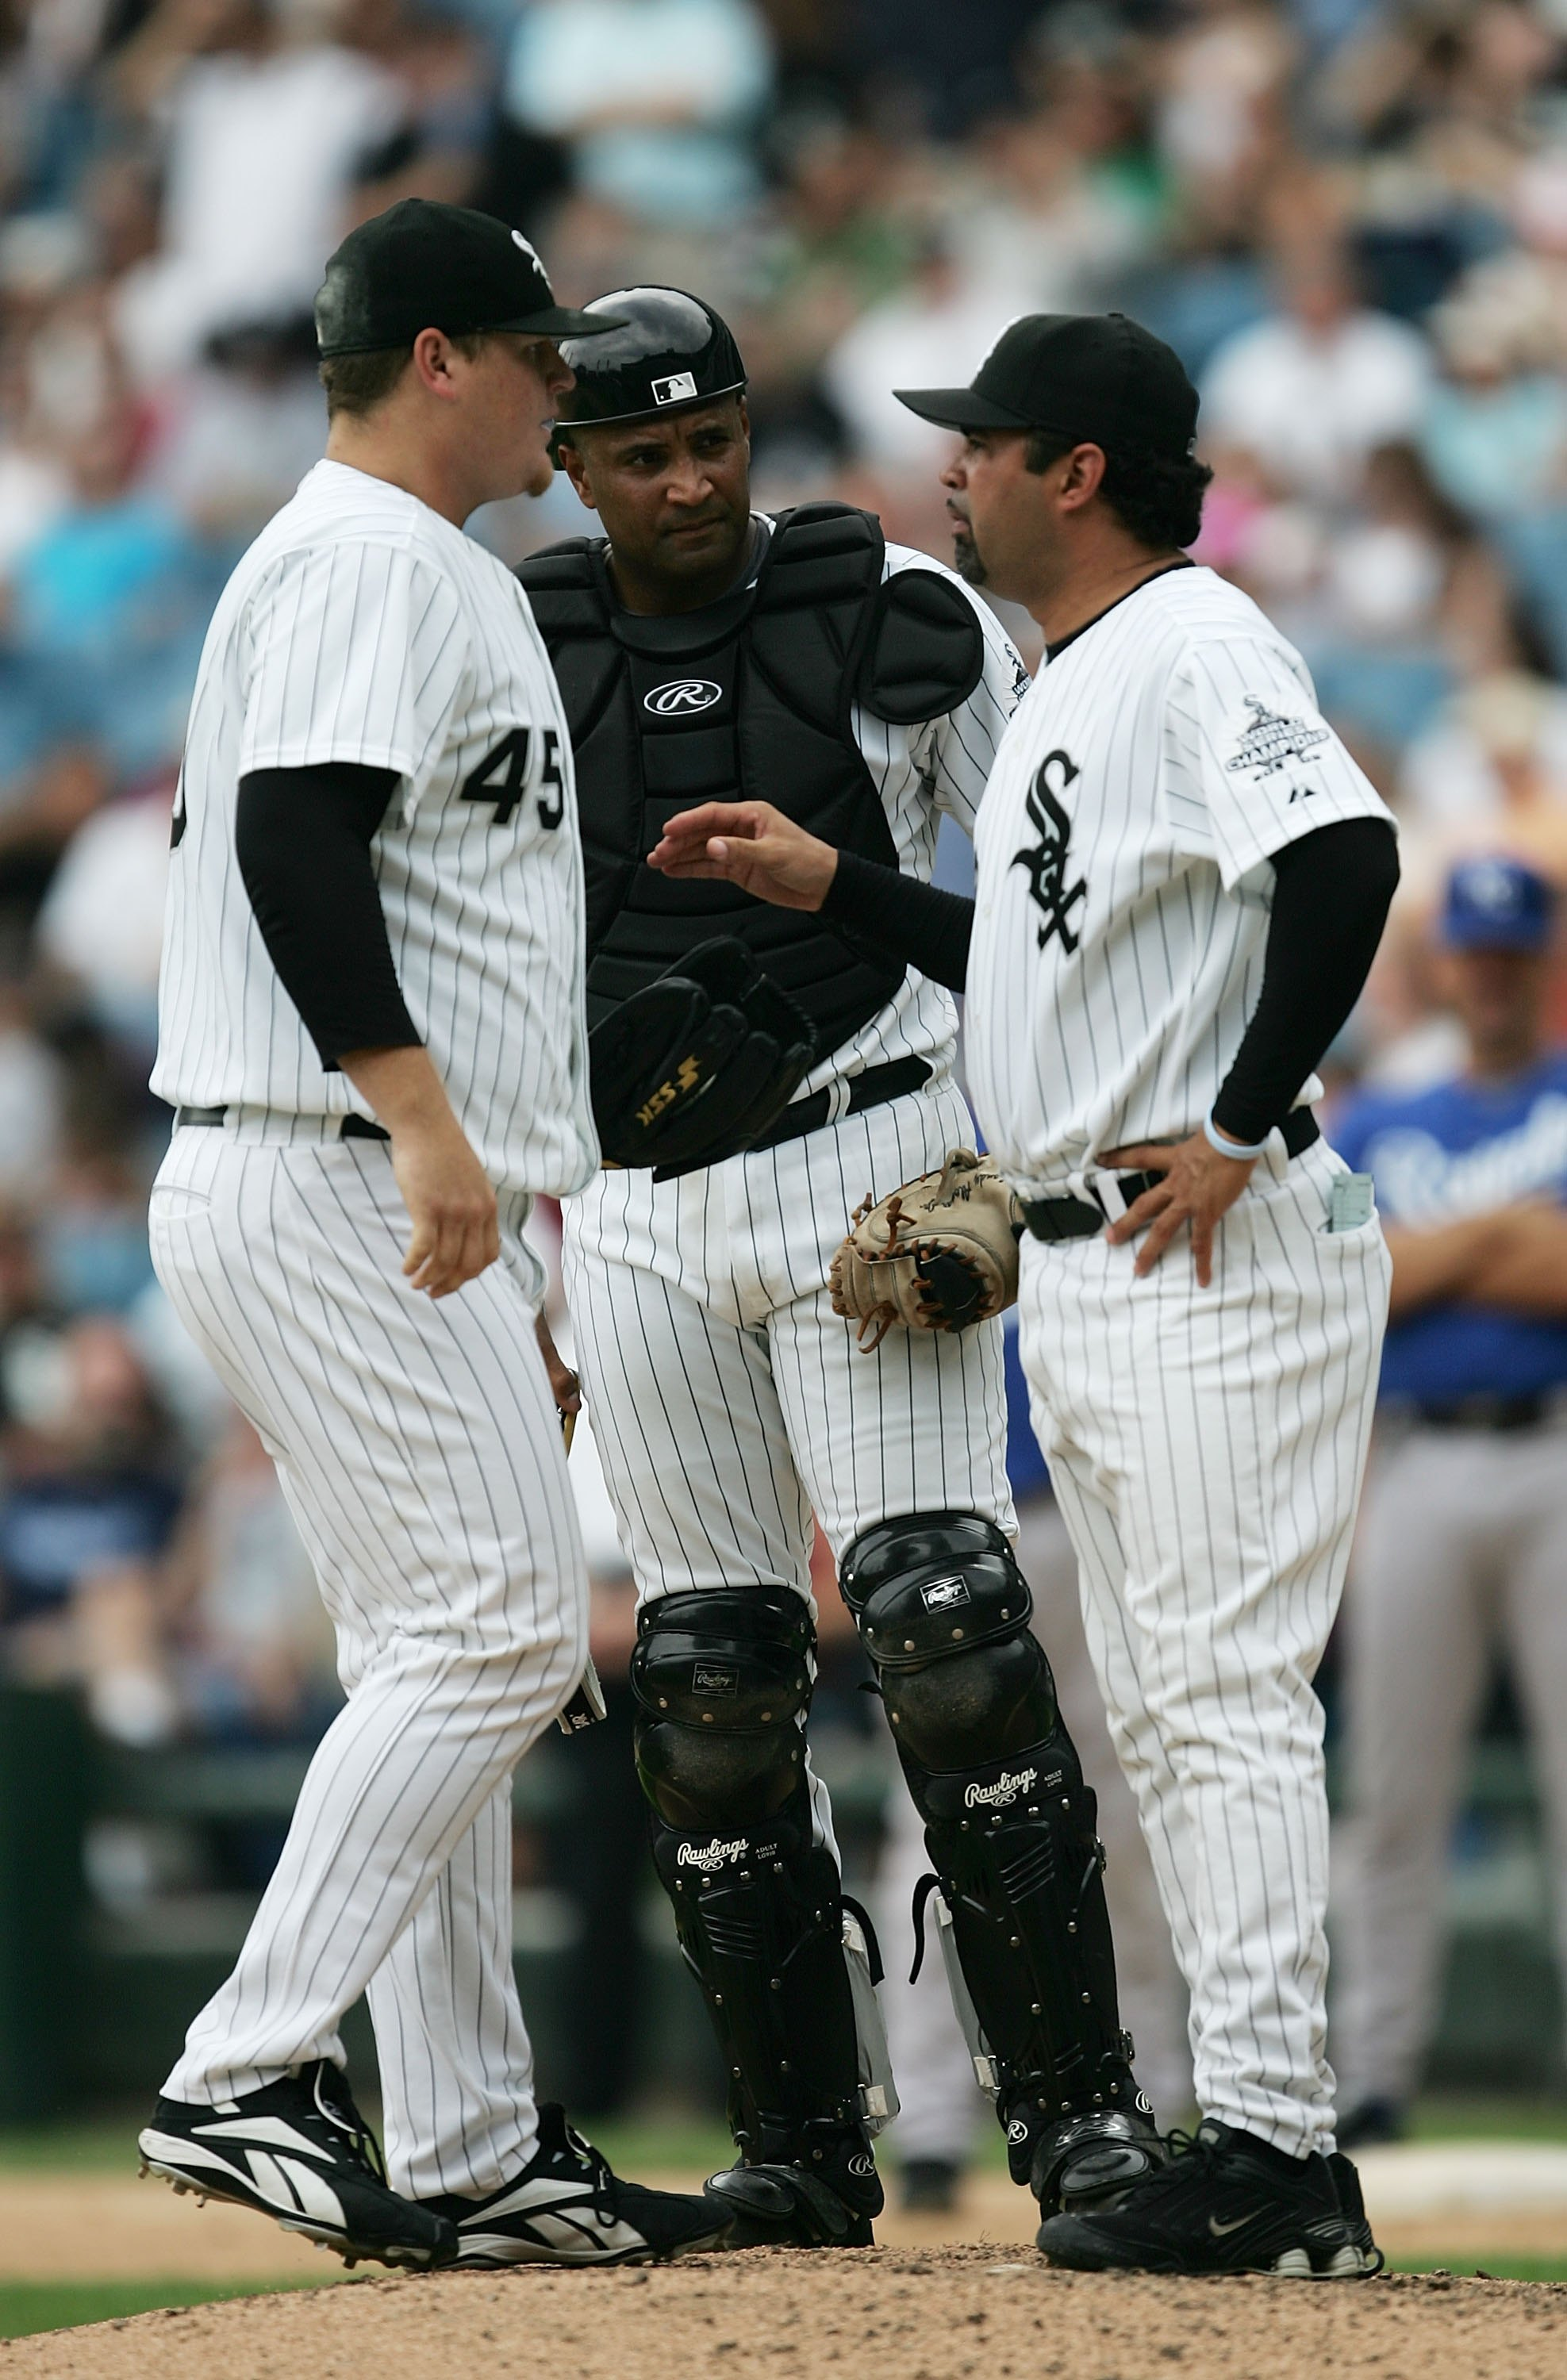 CHICAGO - AUGUST 17:  Manager Ozzie Guillen #13 of the Chicago White Sox (R) talks with catcher Sandy Alomar, Jr. #26 and closer Bobby Jenks #45 in the eighth inning of a game against the Kansas City Royals August 17, 2006 at U.S. Cellular Field in Chicag